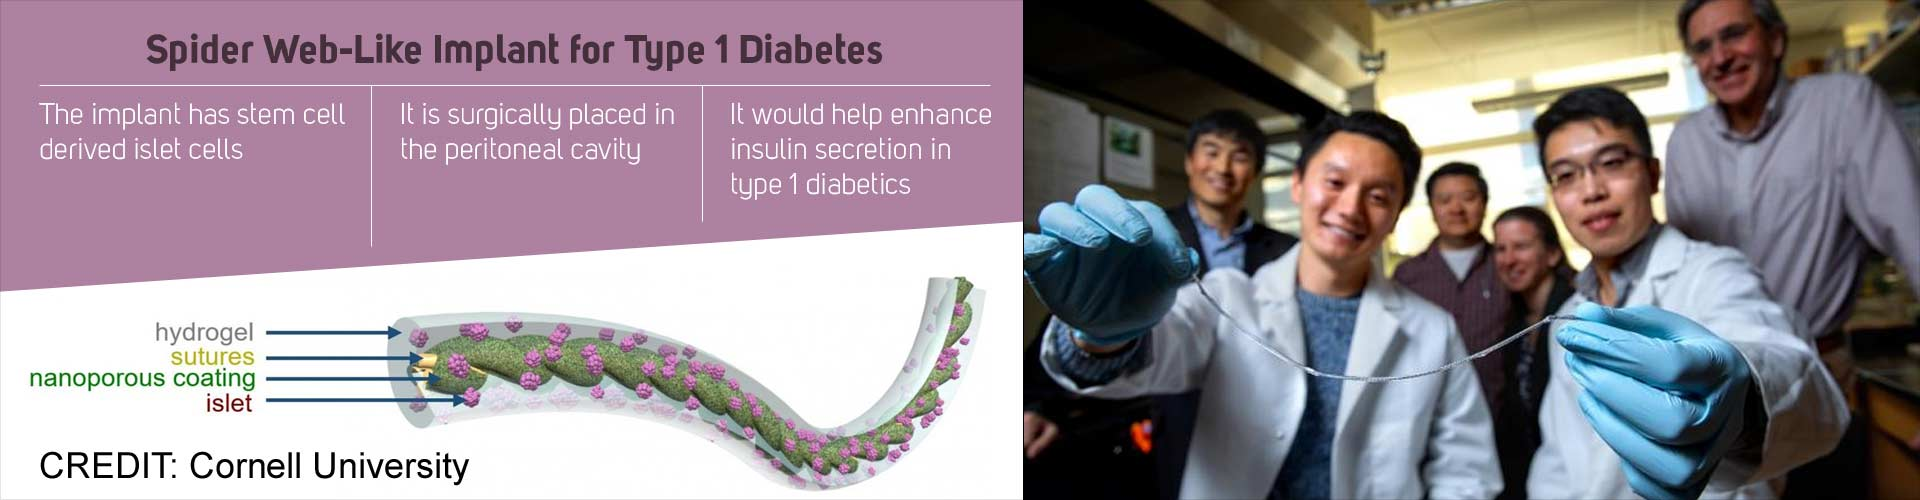 Removable Implant For Treatment of Type 1 Diabetes